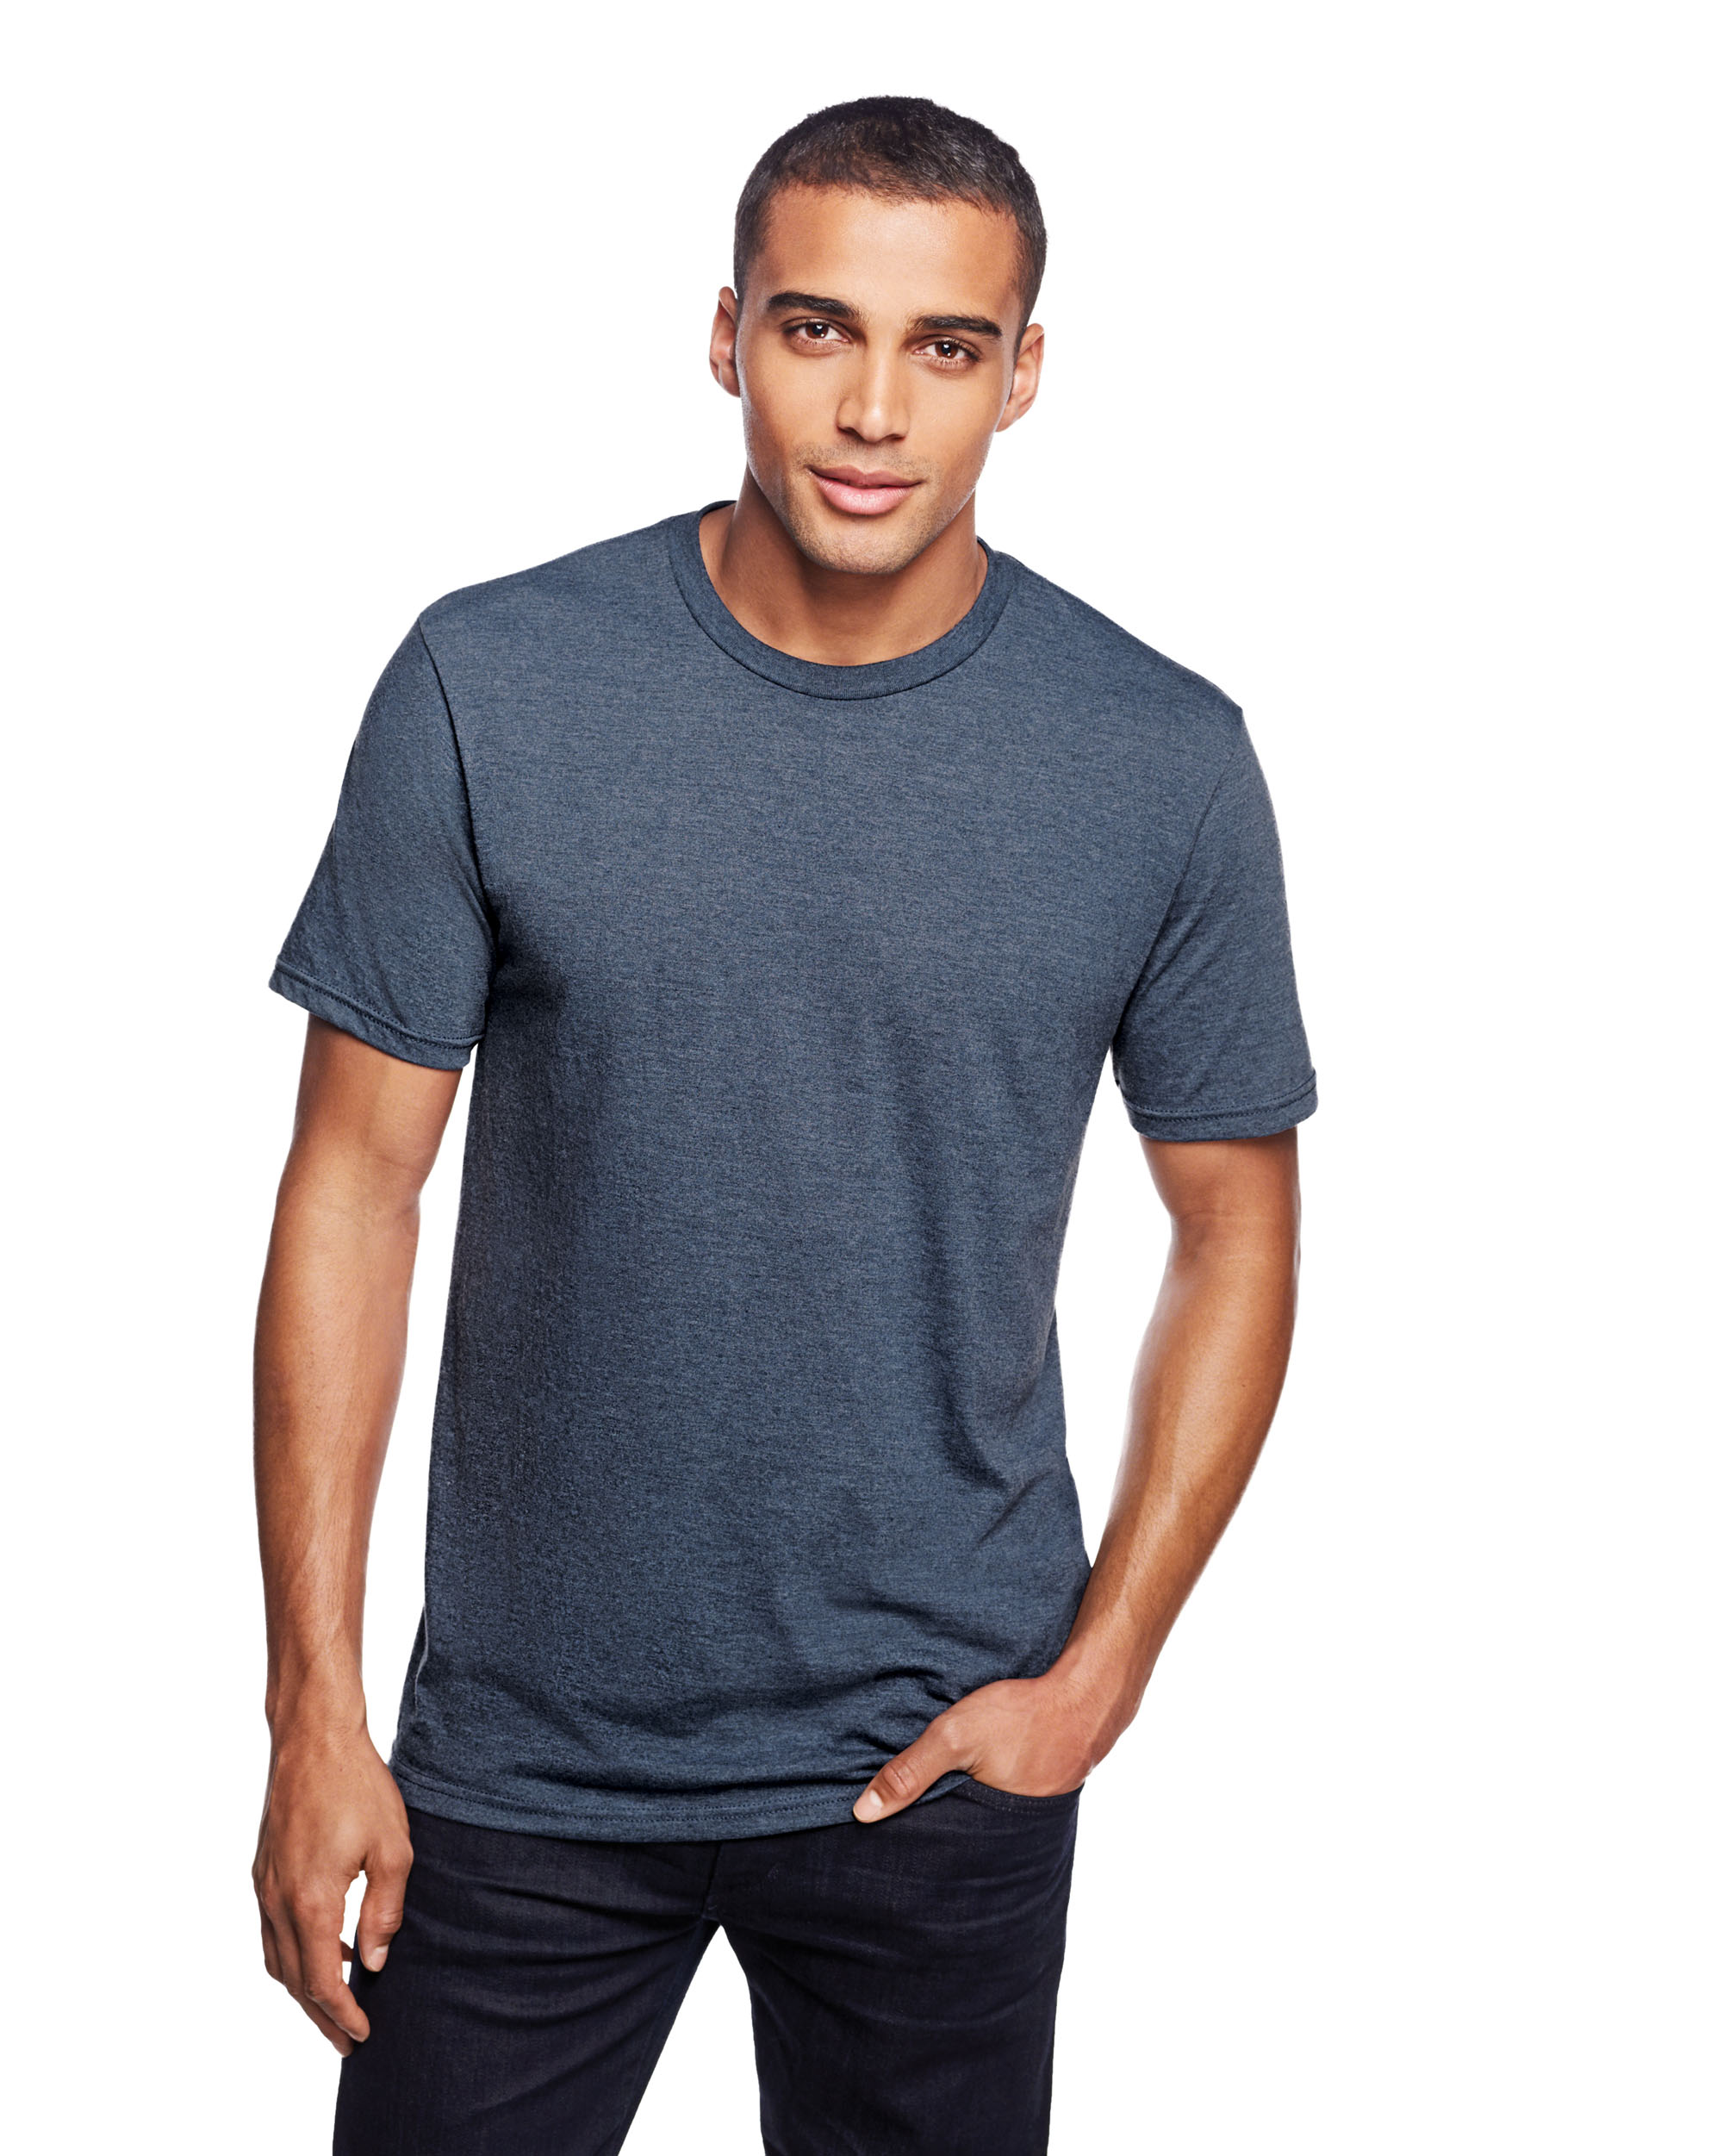 male model in navy tri-blend DM130 tee